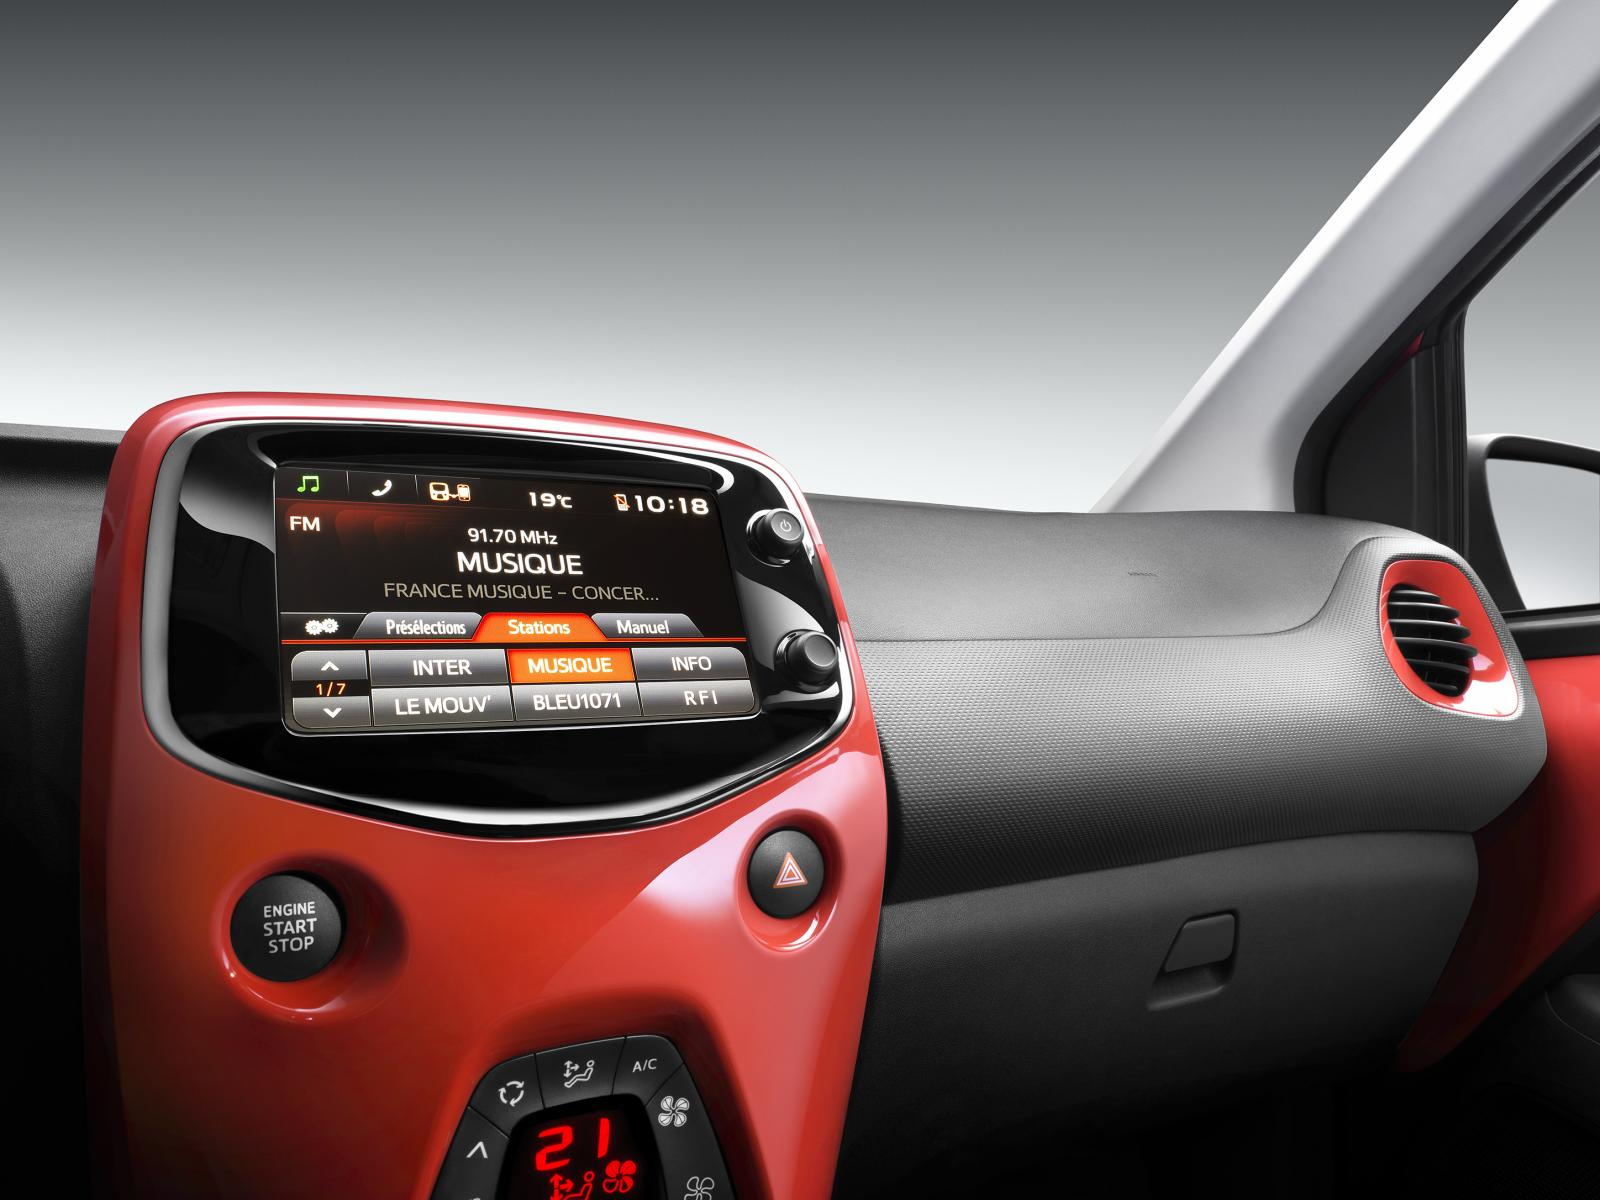 2014 C1 Airscape Feel Edition